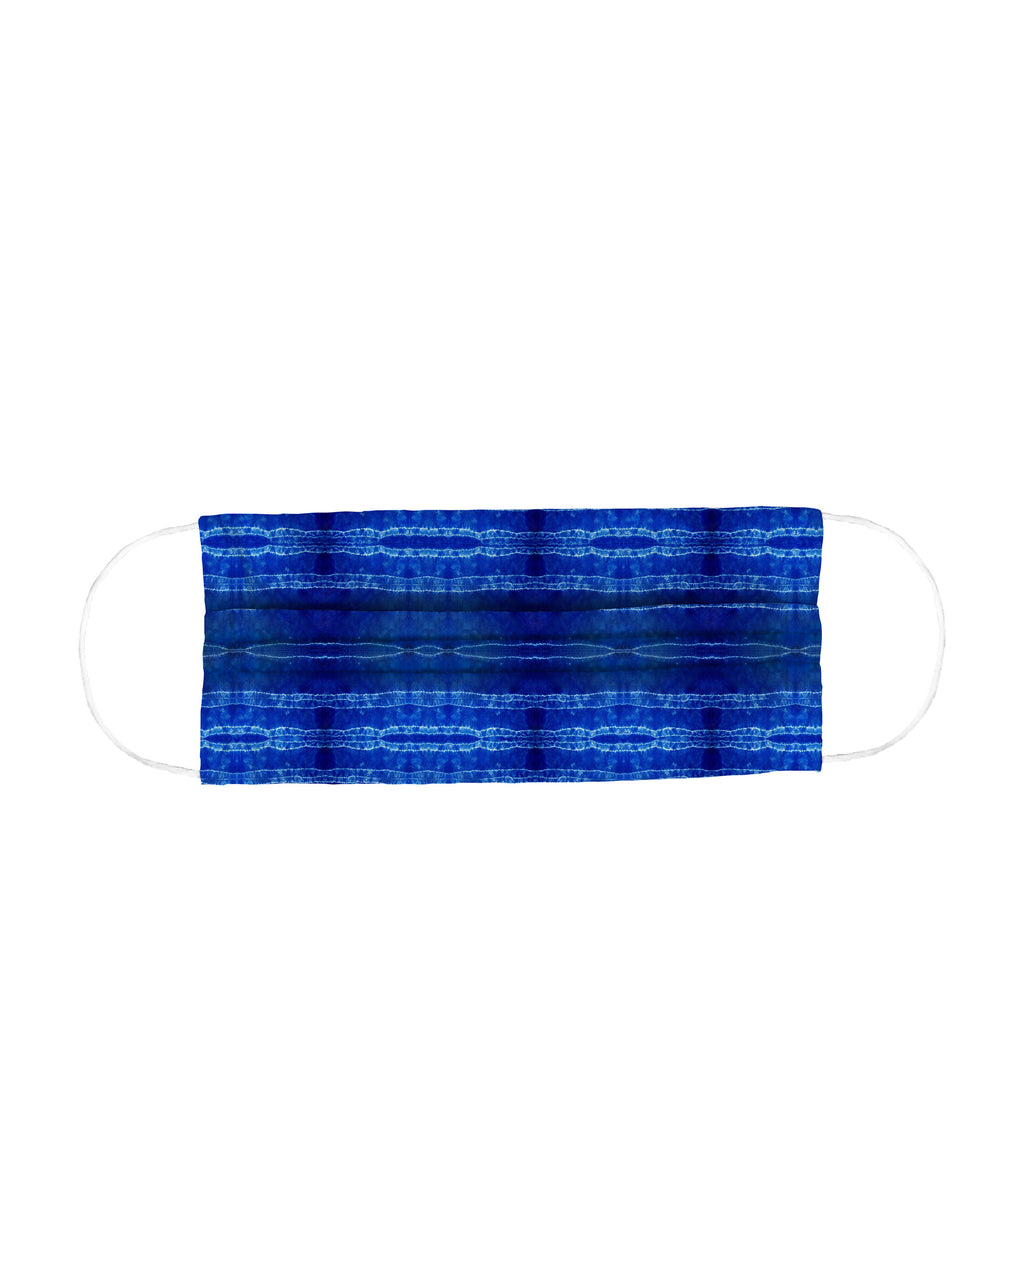 AB10020 - Nicole Miller Shibori Stripe Face Mask - face mask - face mask - THIS IS A 100% COTTON REUSABLE, WASHABLE FACE MASK FOR GENERAL USE AND IS NOT A REPLACEMENT FOR A MEDICAL MASK. MASK IS INTENDED FOR USE AS AN EXTRA PRECAUTION TOGETHER WITH SOCIAL DISTANCING AND HAND WASHING. Add 1 line break WEARING A FACE MASK IN PUBLIC CAN HELP PROTECT YOUR HEALTH AND PREVENT THE SPREAD OF THE CORONAVIRUS TO OTHERS. THE CENTER FOR DISEASE CONTROL (CDC) RECOMMENDS THAT EVERYONE WEAR A FACE MASK IN PUBLIC. Add 1 li